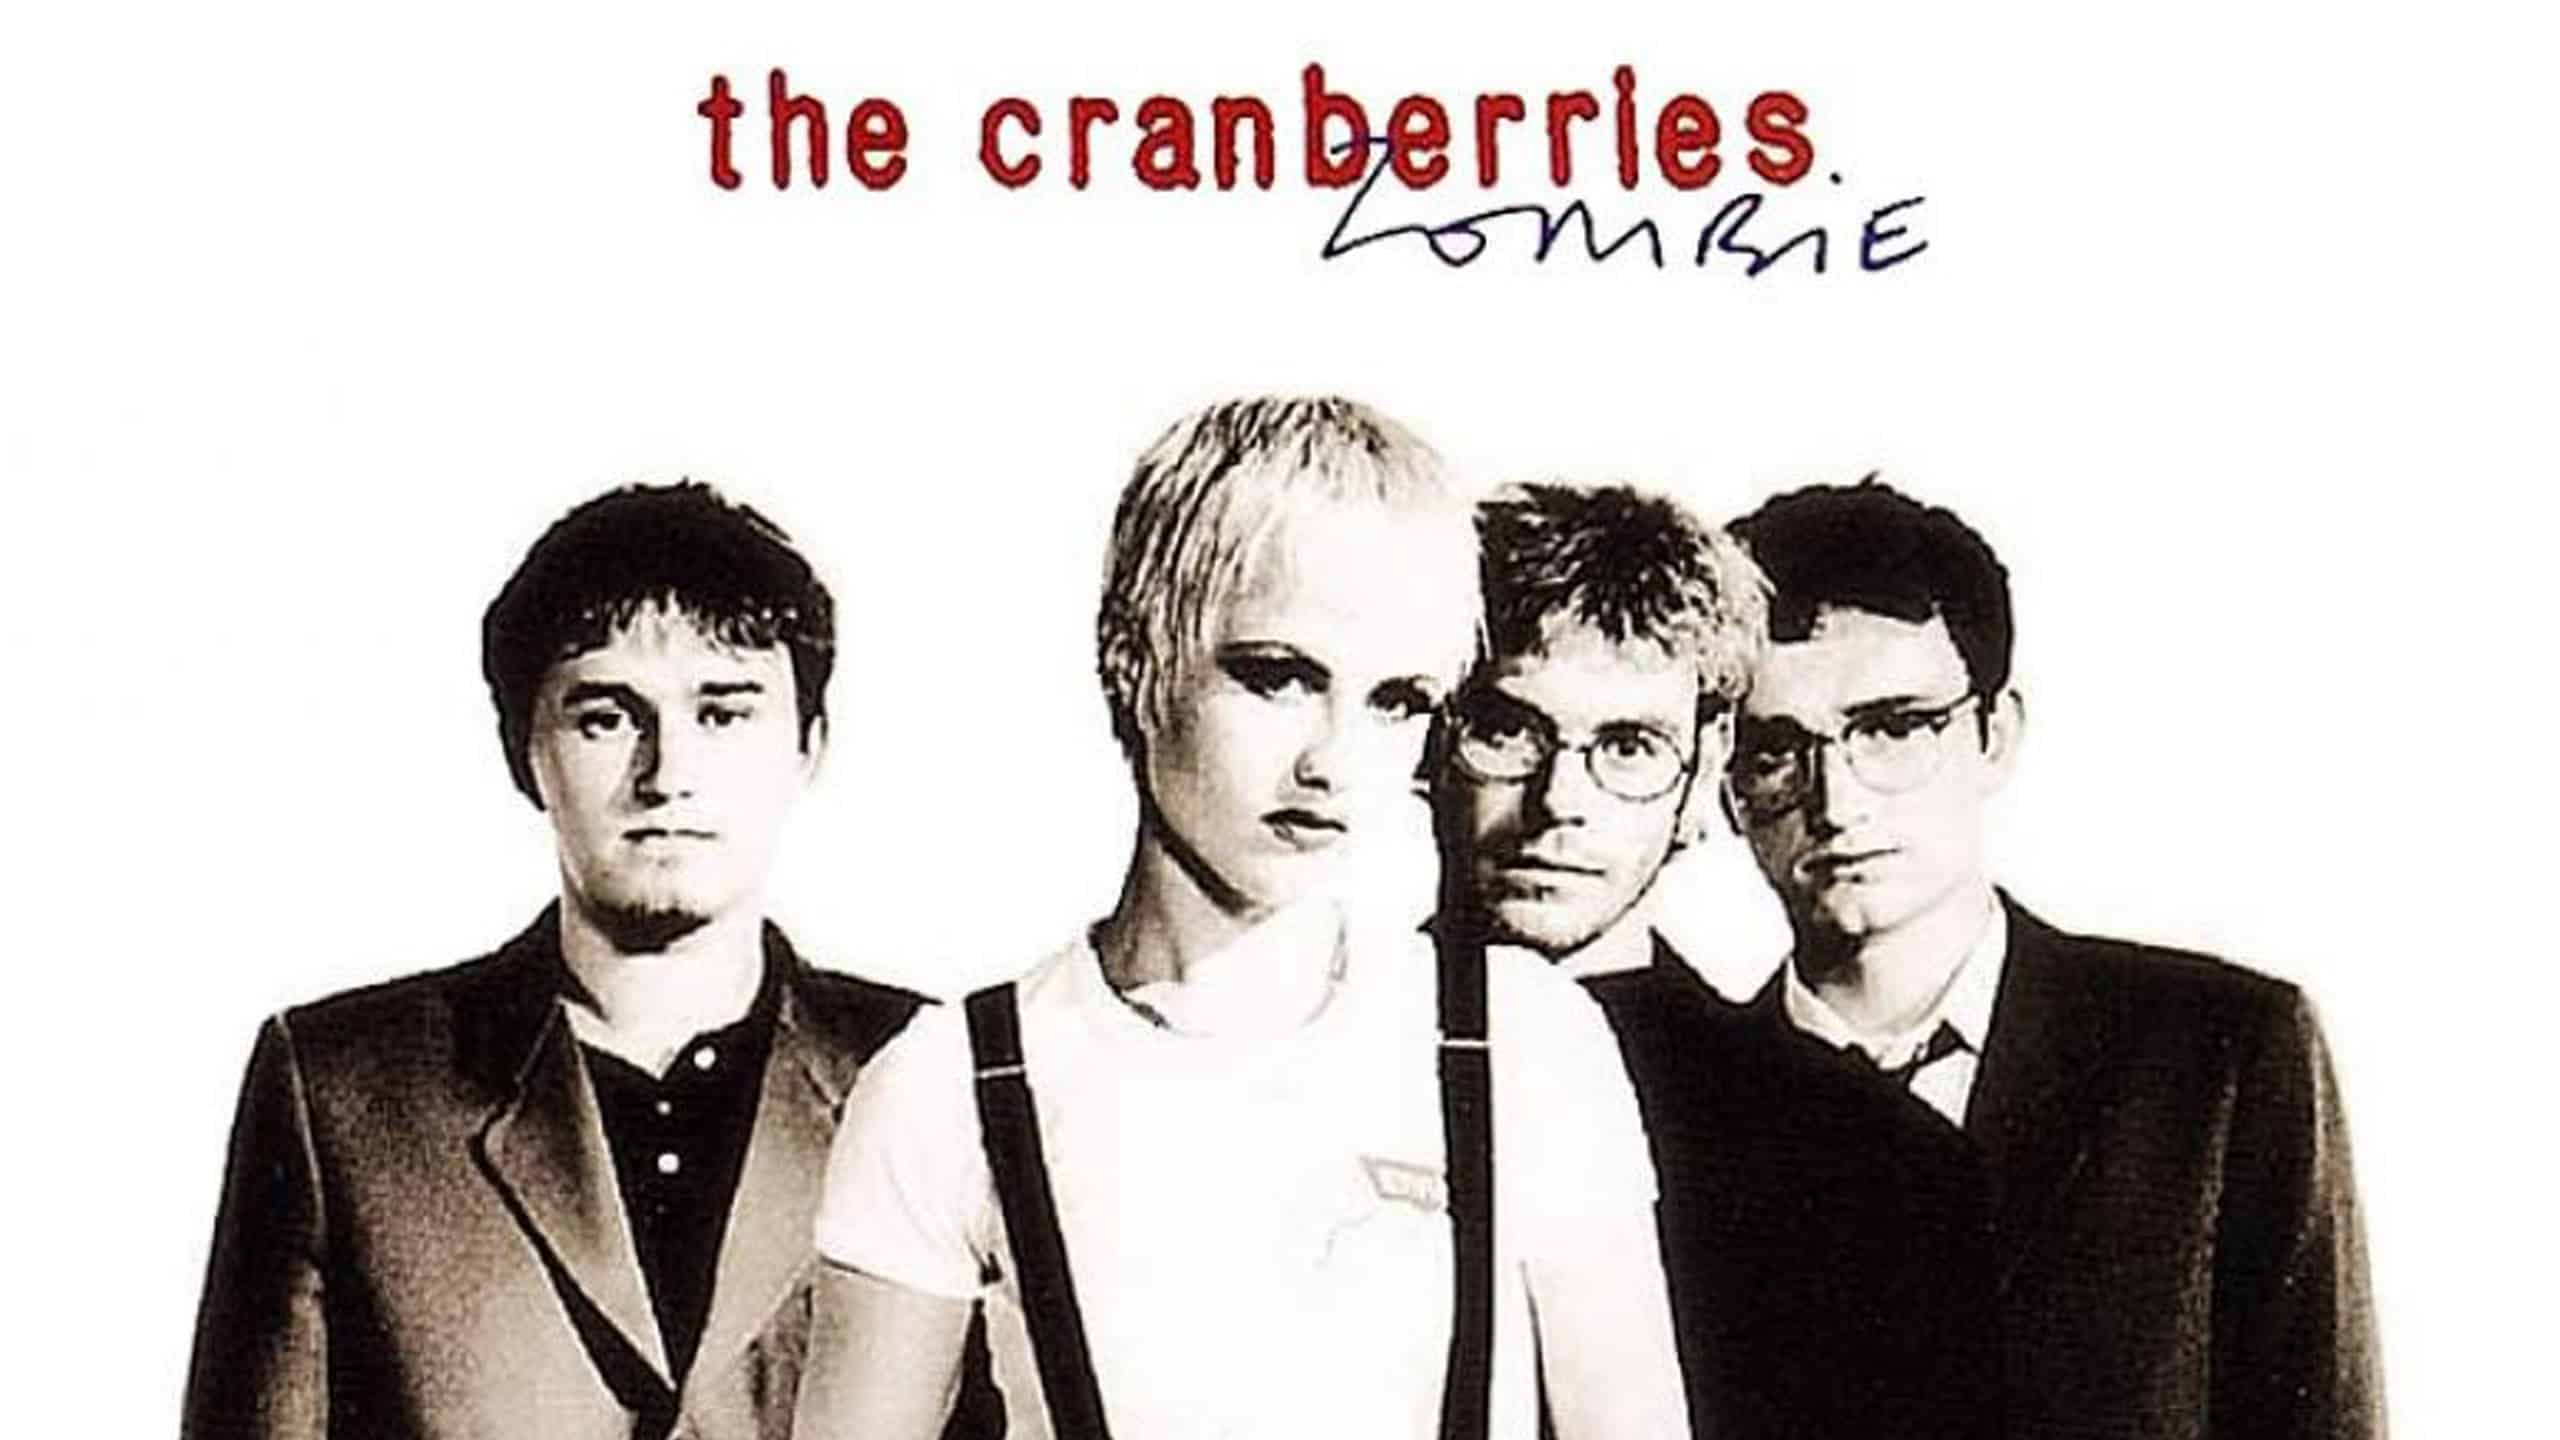 the cranberries zombie songtext